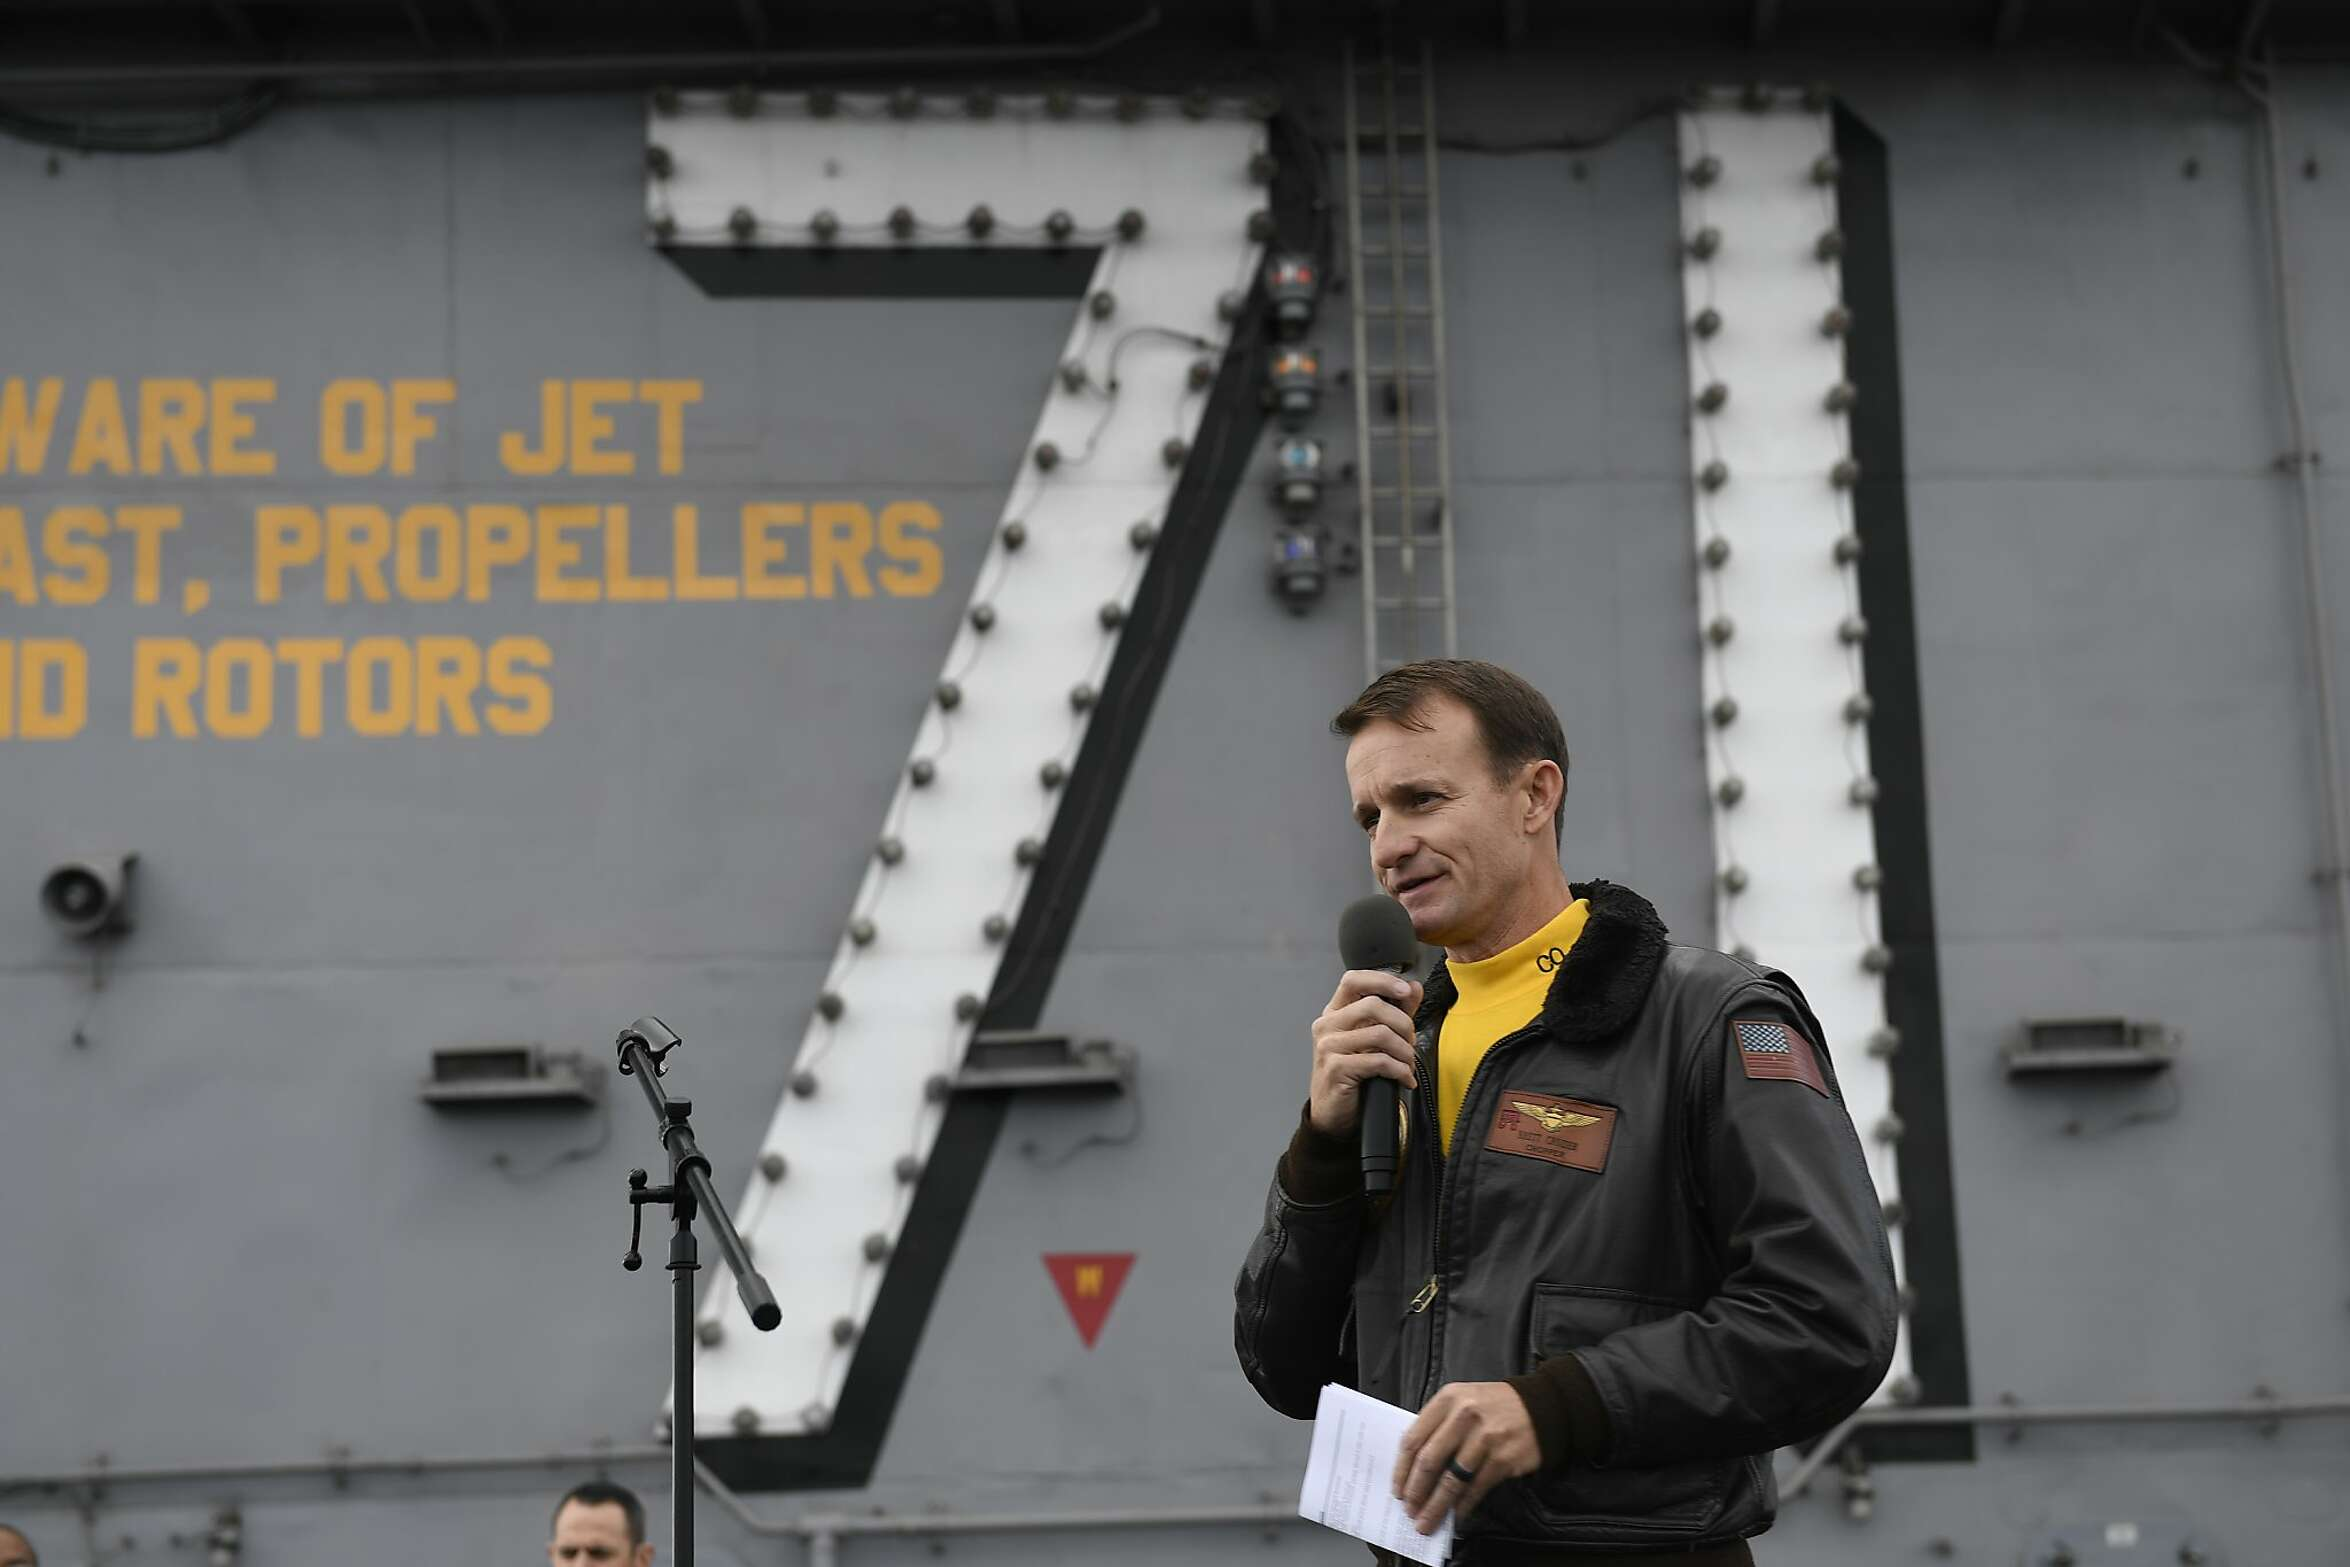 FILE - A photo provided by the U.S. Navy shows Capt. Brett Crozier, then commanding officer of the USS Theodore Roosevelt, addressing his crew during the aircraft carrier's operations in the Eastern Pacific Ocean, Nov. 15, 2019. Crozier and Rear. Adm. Stuart Baker, the ship's two top officers, made poor decisions in response to the coronavirus outbreak onboard the warship, according to the final results of a Navy inquiry released Friday, June 19, 2020. (U.S. Navy via The New York Times)